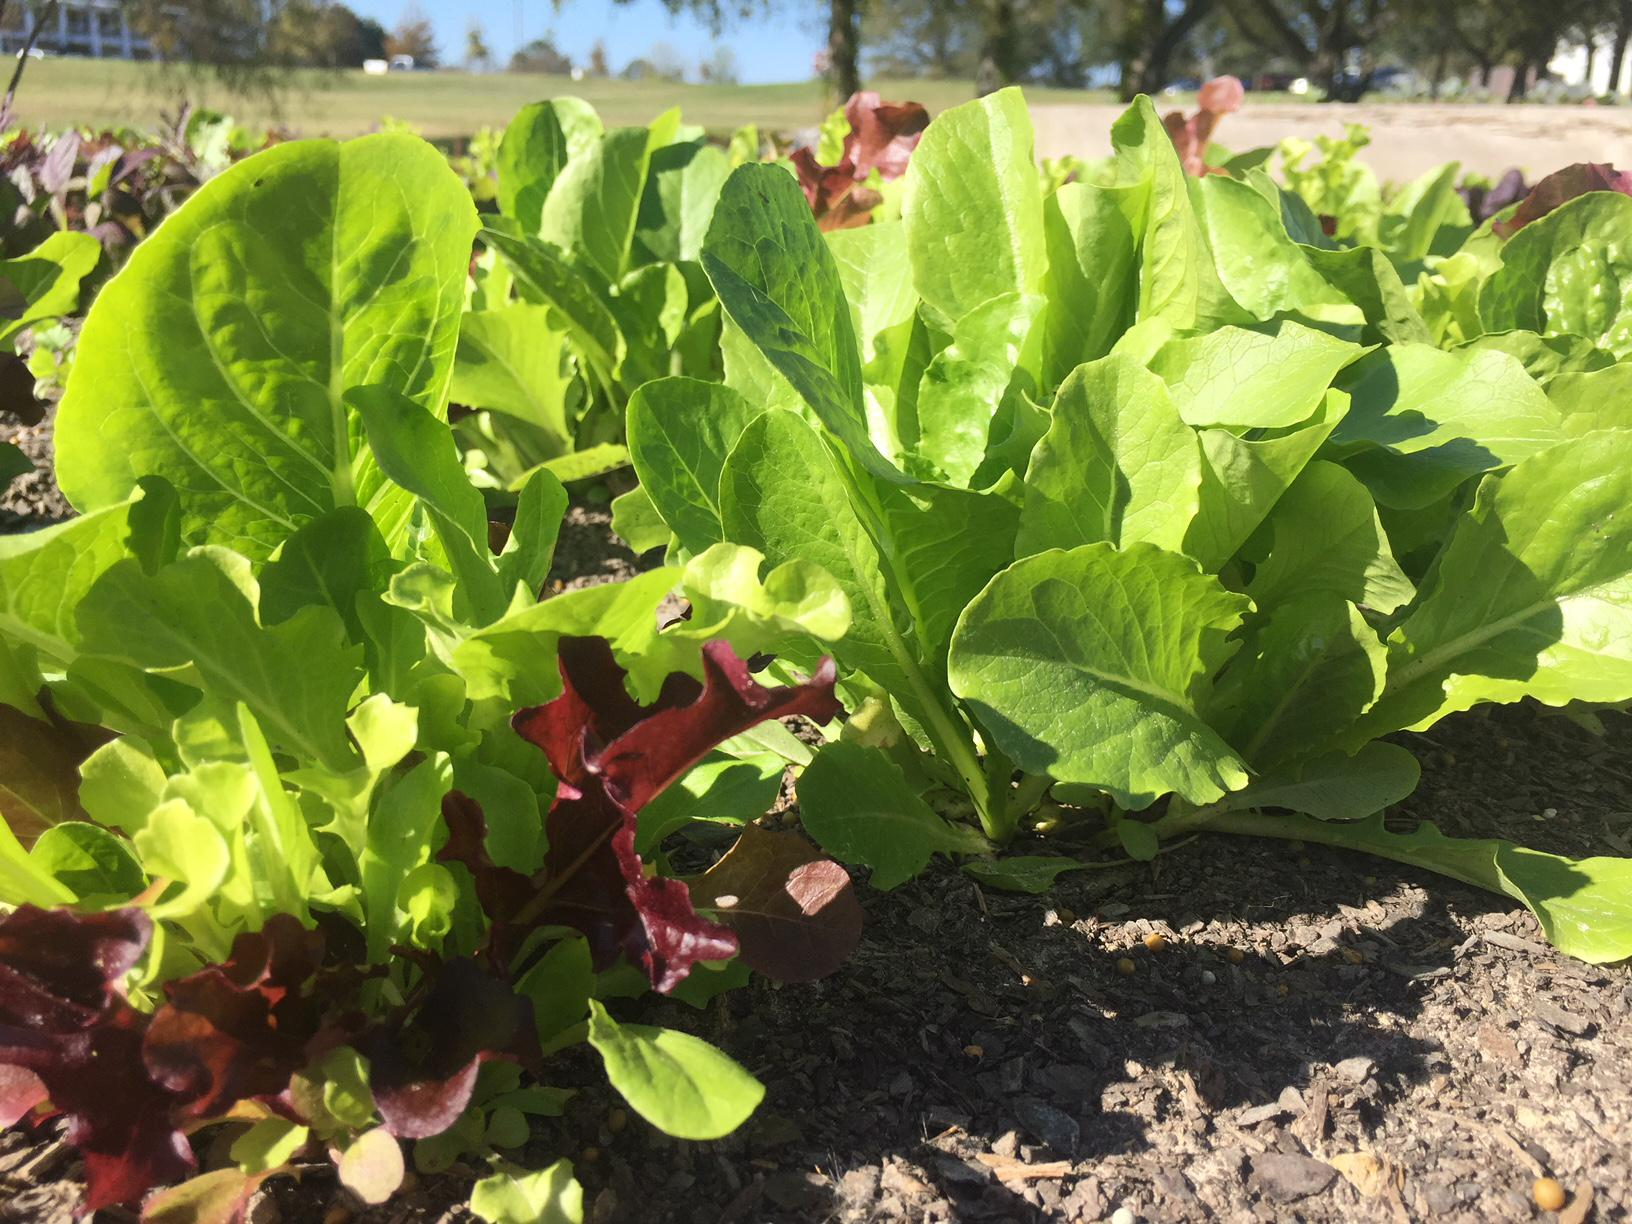 Several varieties of lettuces grow in a raised bed.